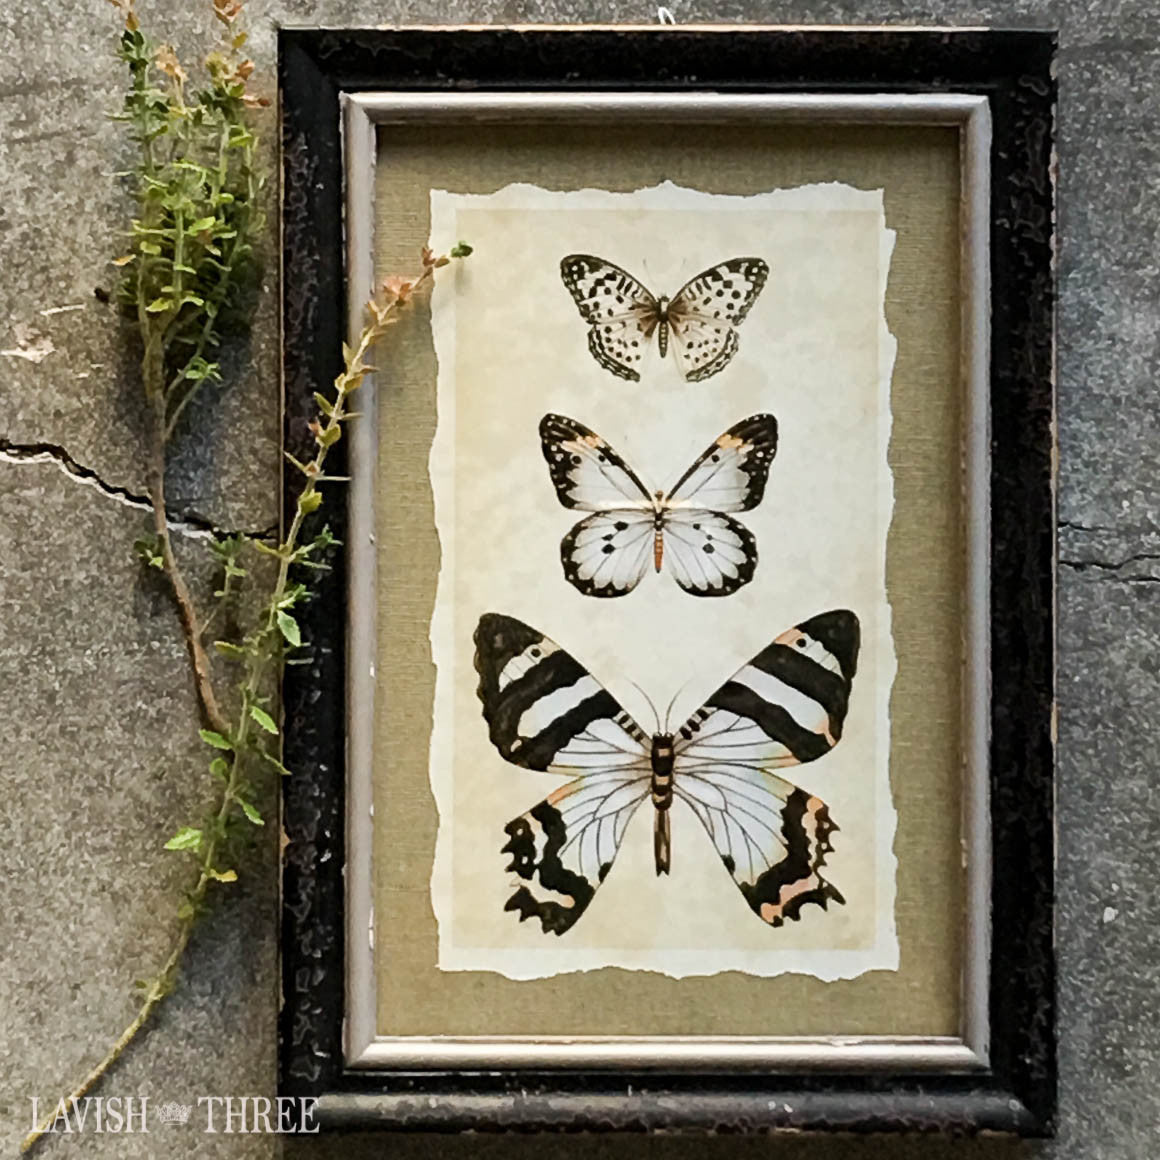 Distressed wood frame soft black butterfly vintage insect print wall decor